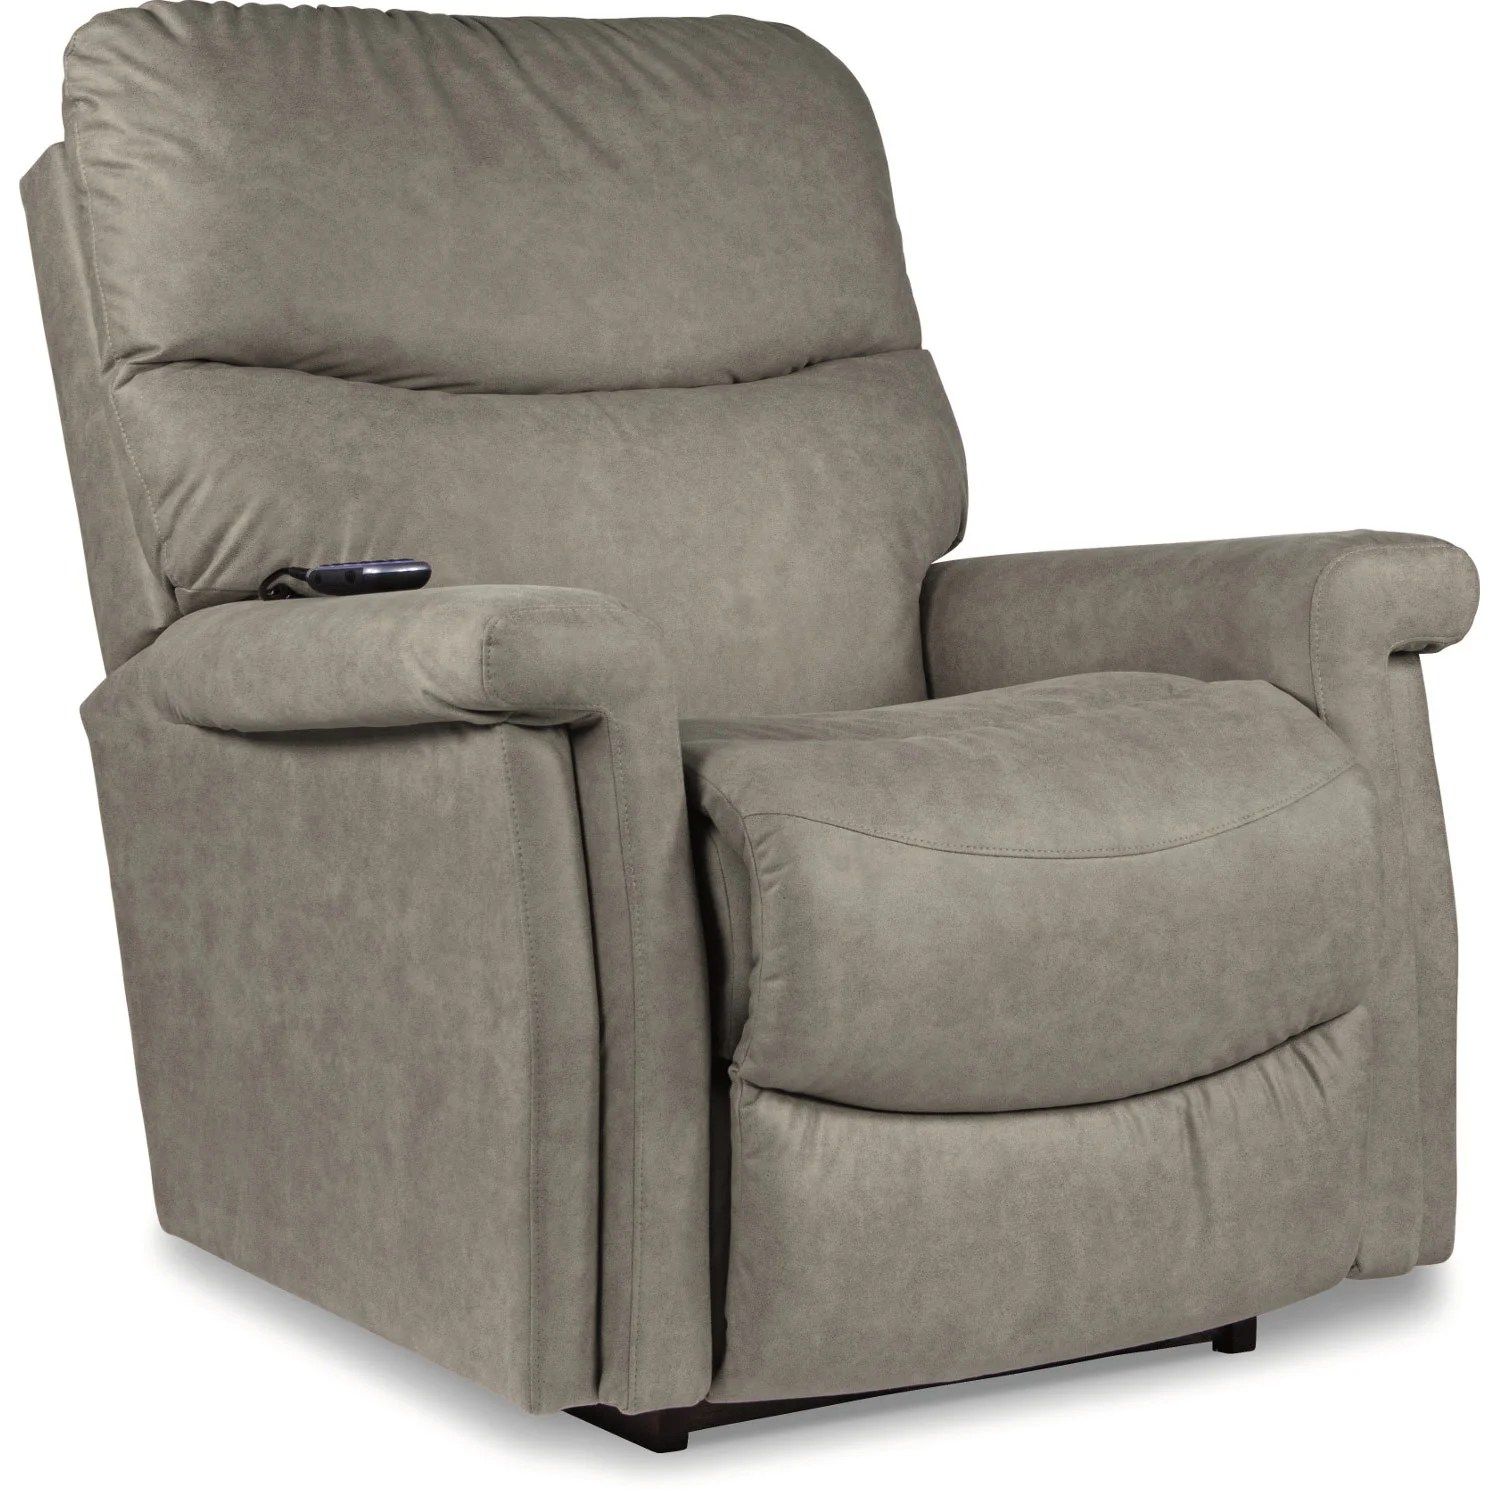 Z Chair For Sale Baylor Powerreclinexr Reclina Rocker Recliner W Two